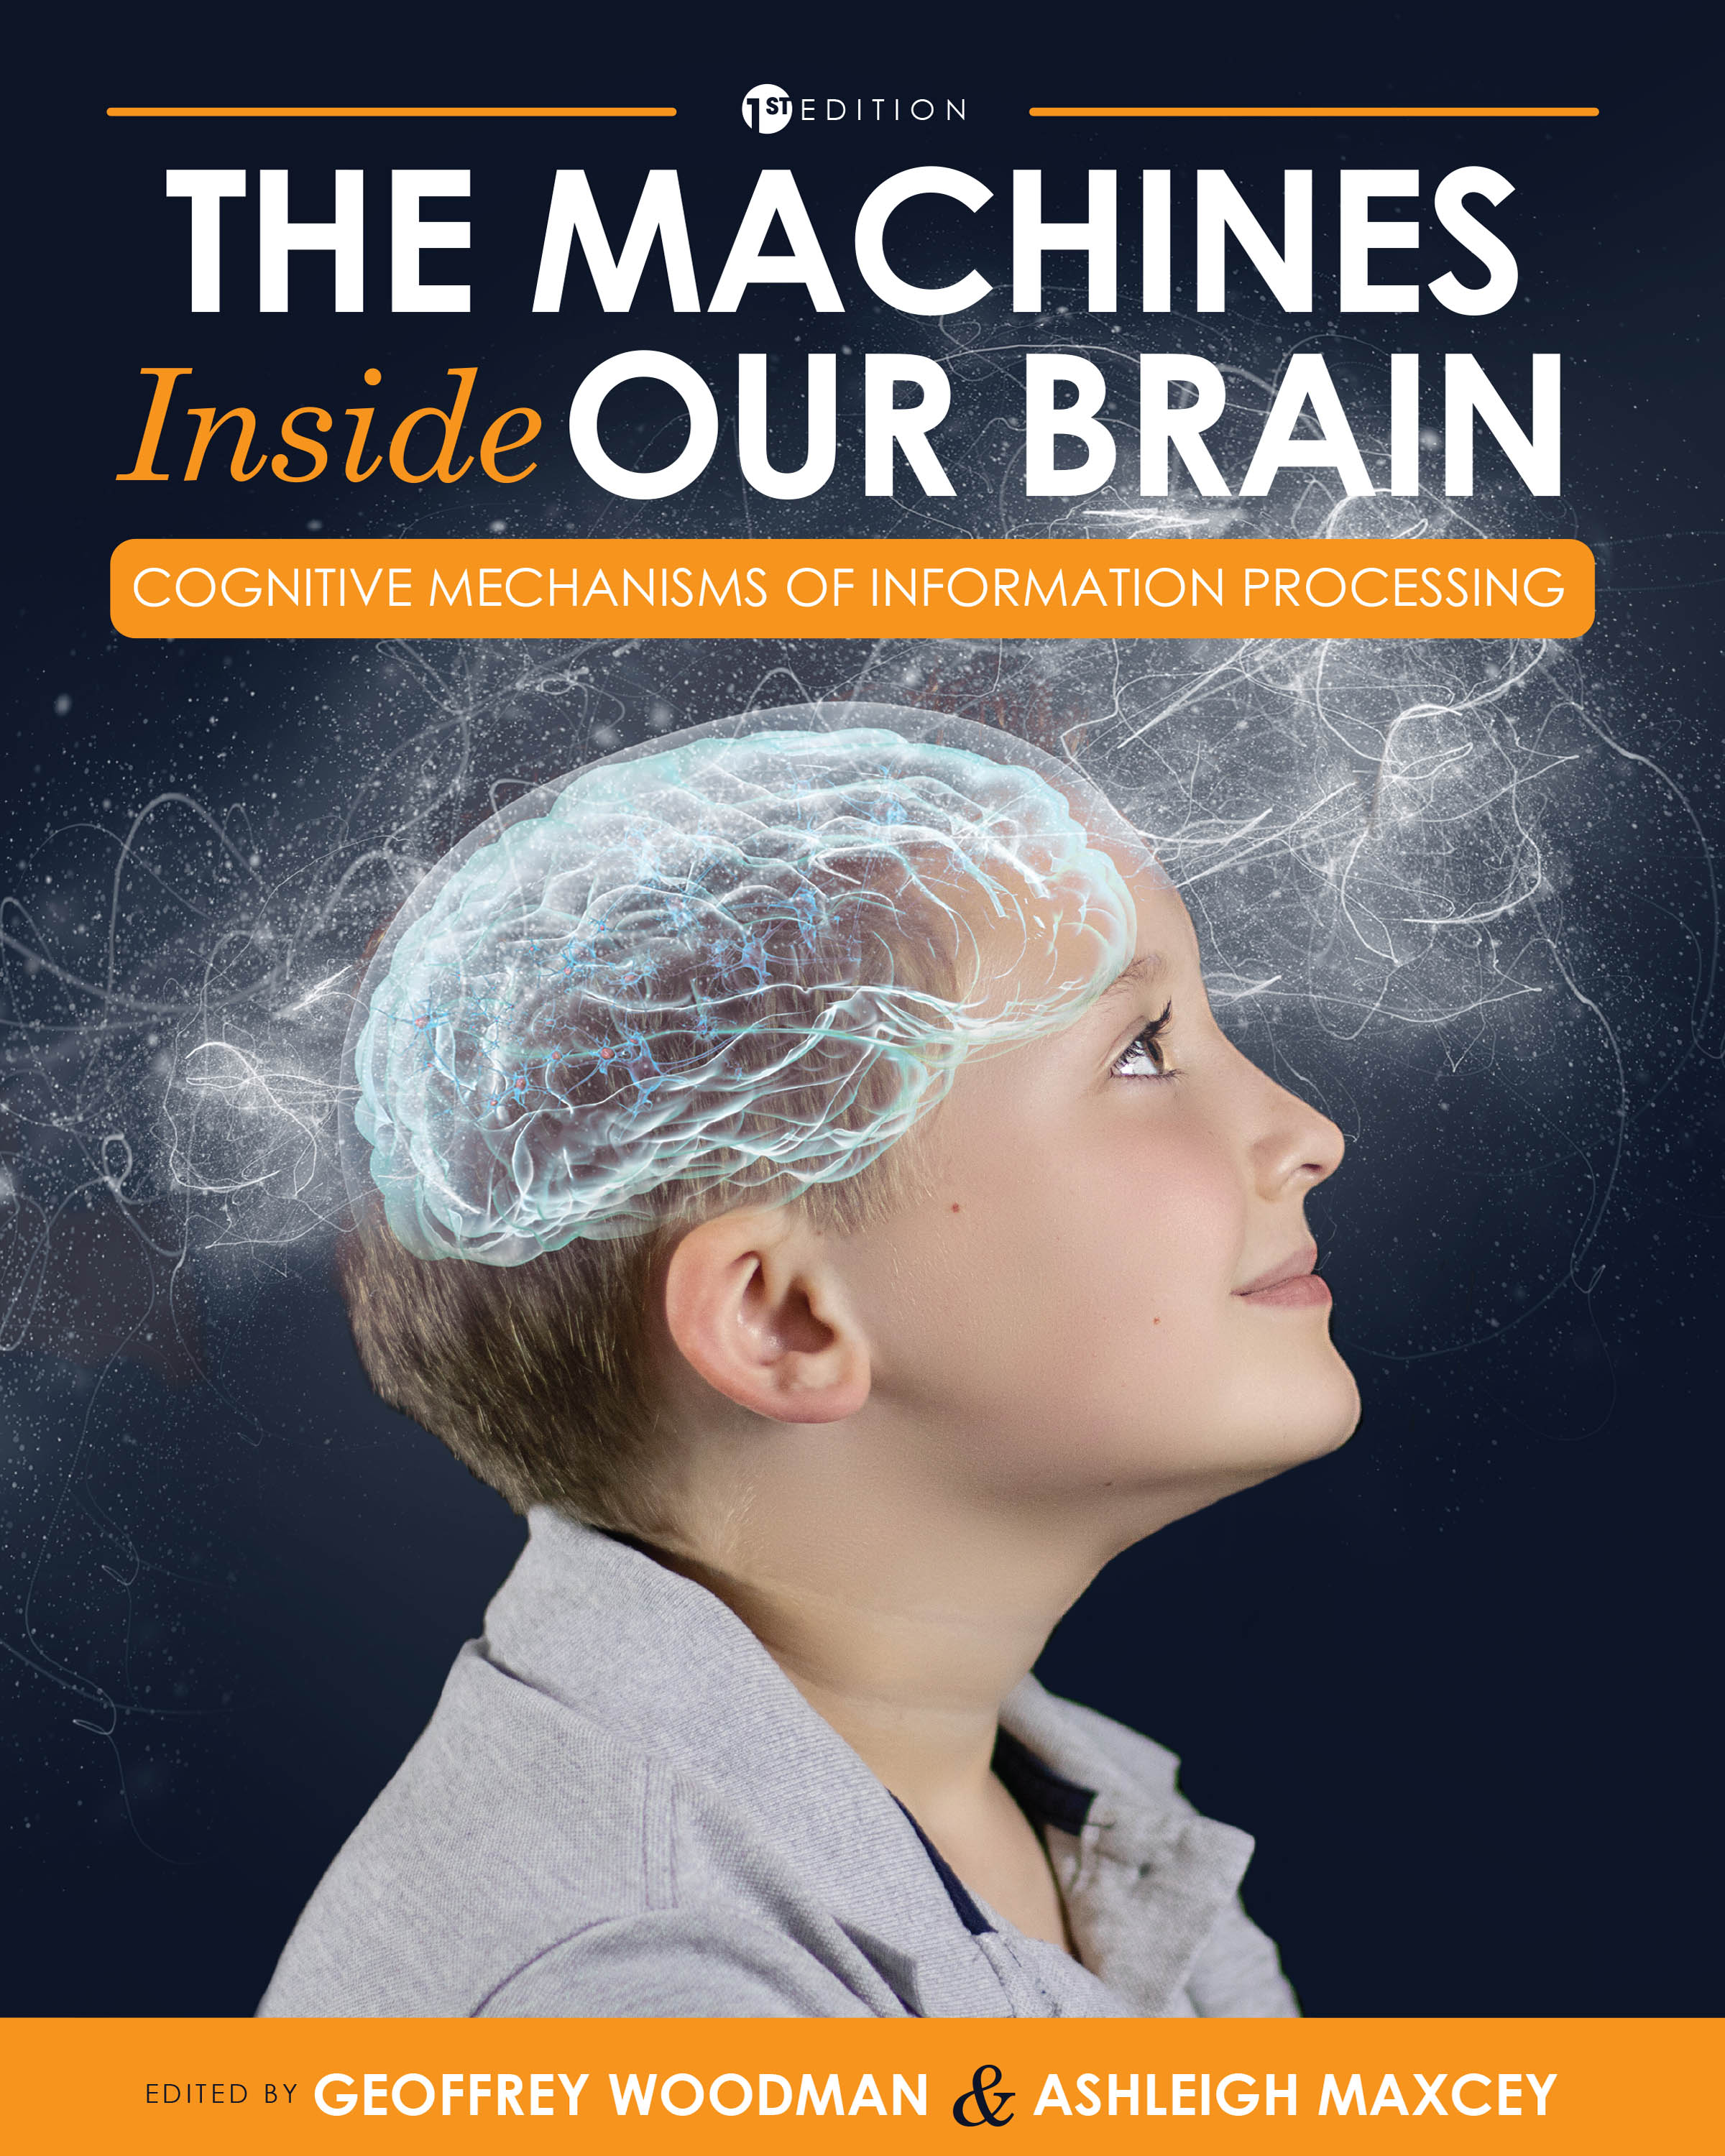 The Machines Inside Our Brain: Cognitive Mechanisms of Information Processing - Eds. Geoffrey Woodman & Ashleigh Maxcey. Available on Amazon (here) and Cognella (here).